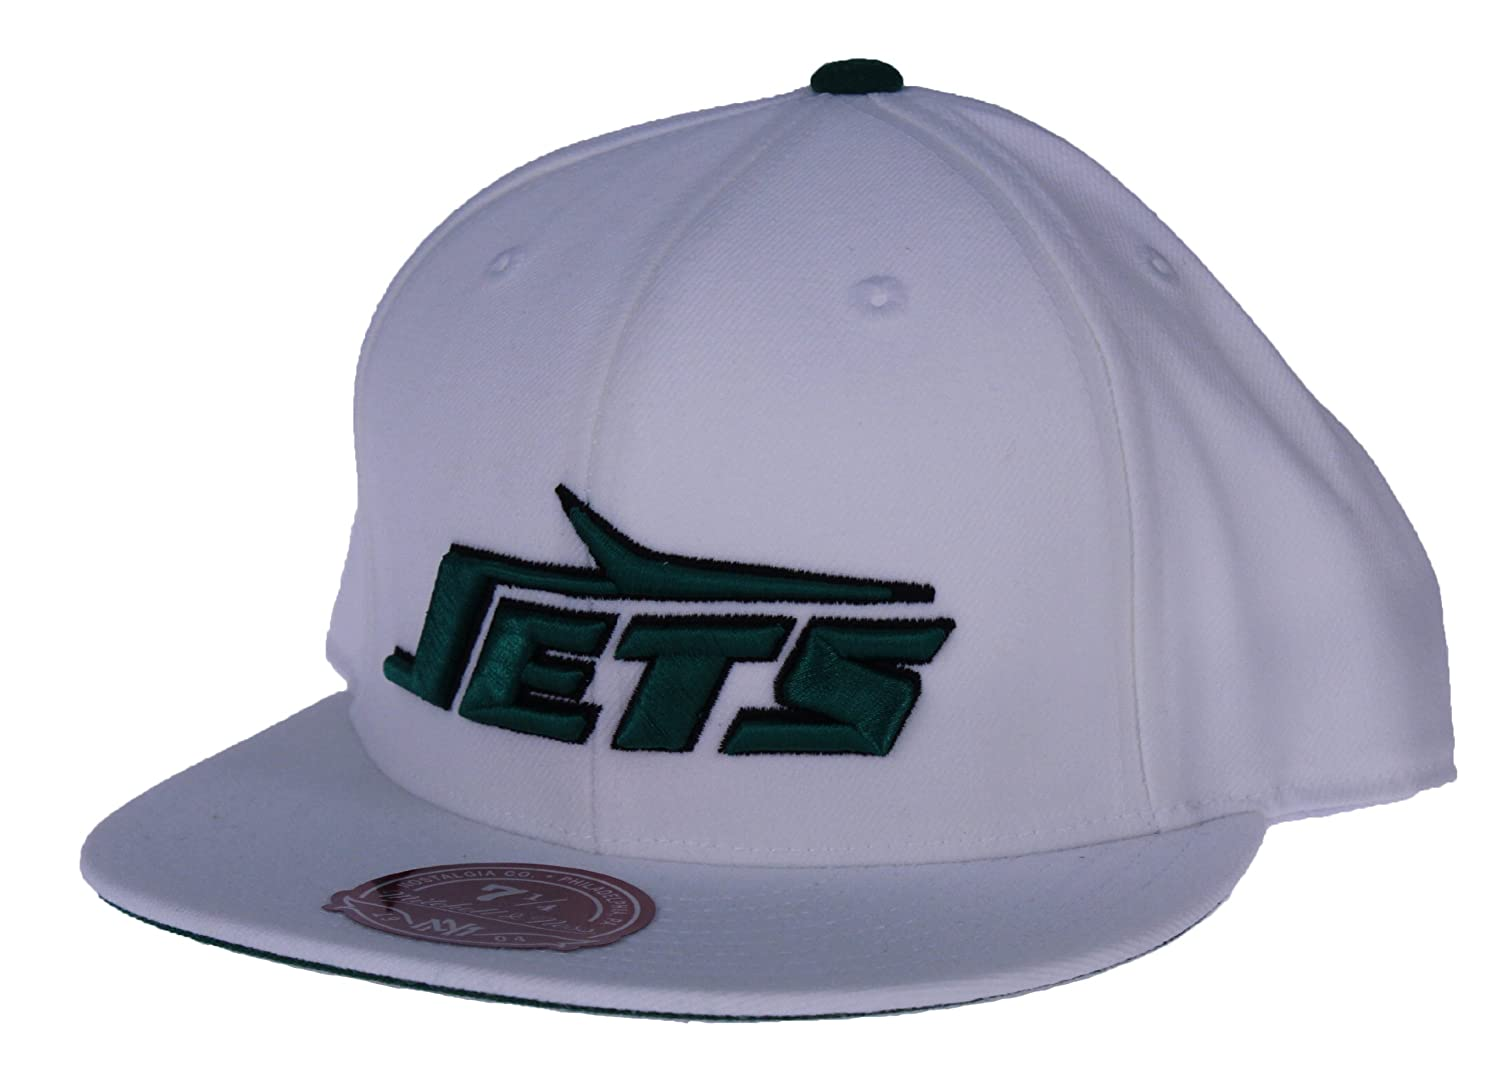 16d6219ec Amazon.com   Mitchell   Ness NFL New York Jets Throwback Logo Fitted ...